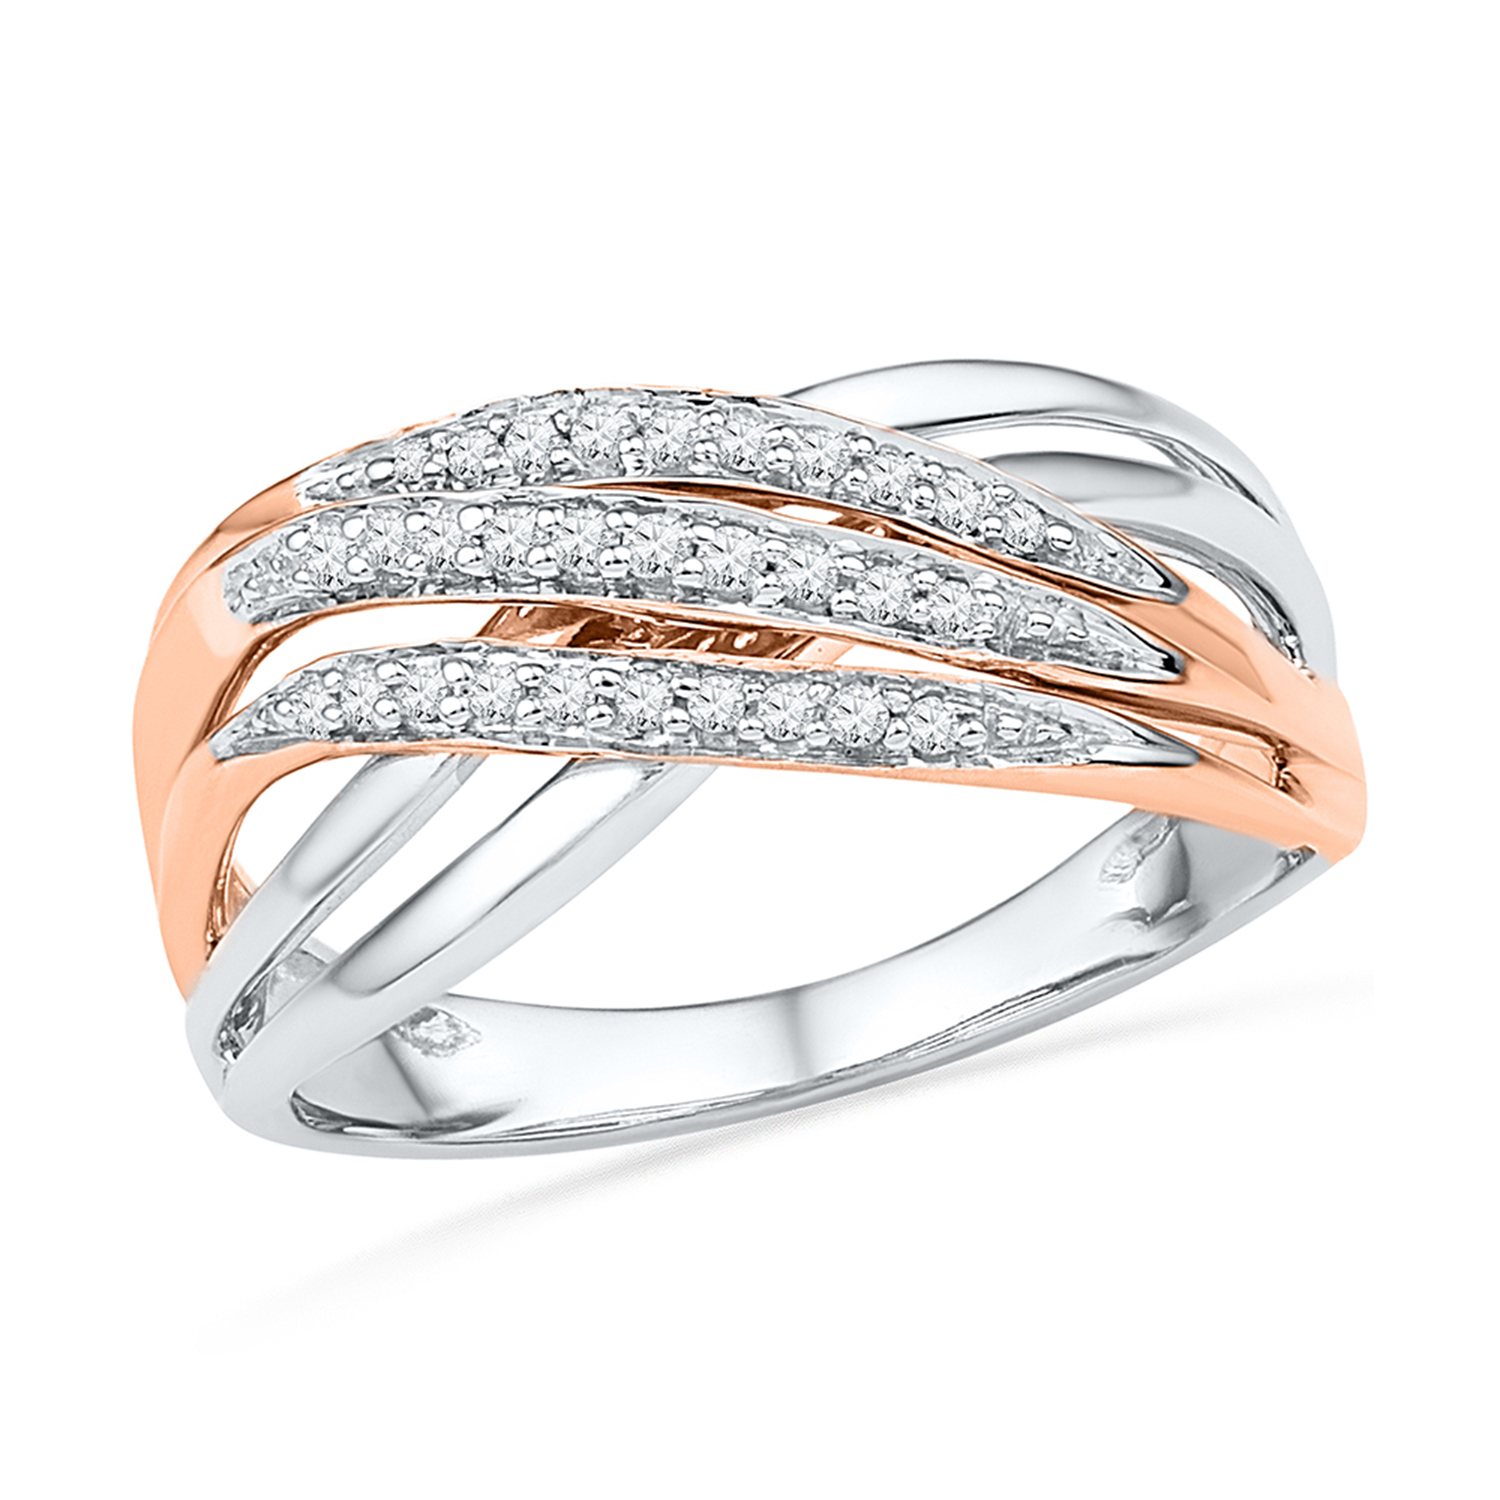 Ring for woman - 10K 2-tone Gold & Diamonds